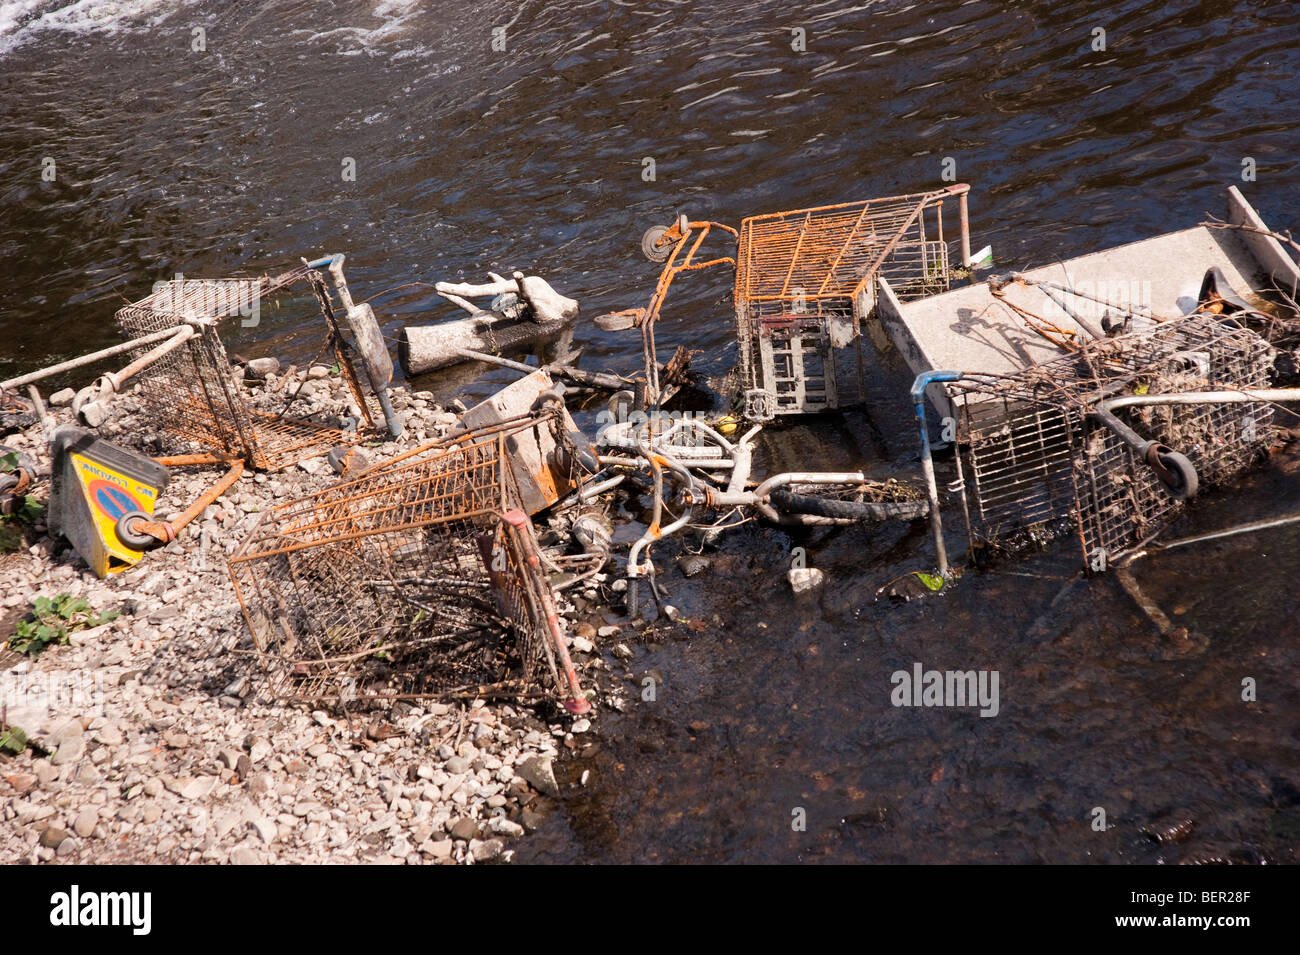 The Water of Leith river in Edinburgh city Scotland urban detritus - Stock Image